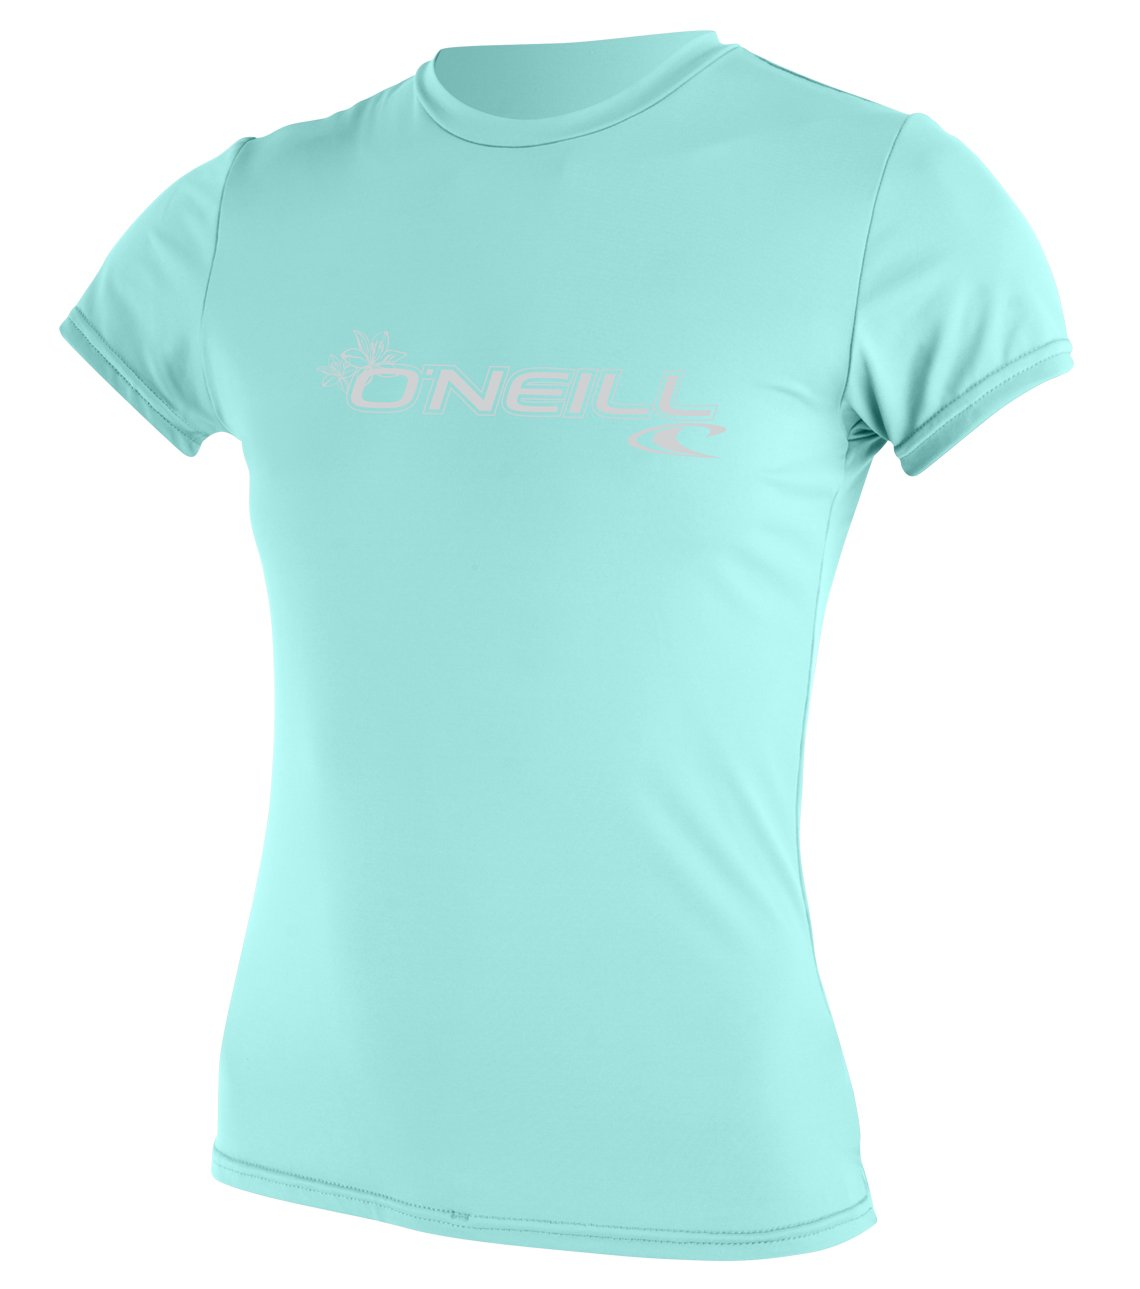 O'Neill Wetsuits Women's Basic Skins Upf 50+ Short Sleeve Sun Shirt, Seaglass, X-Small by O'Neill Wetsuits